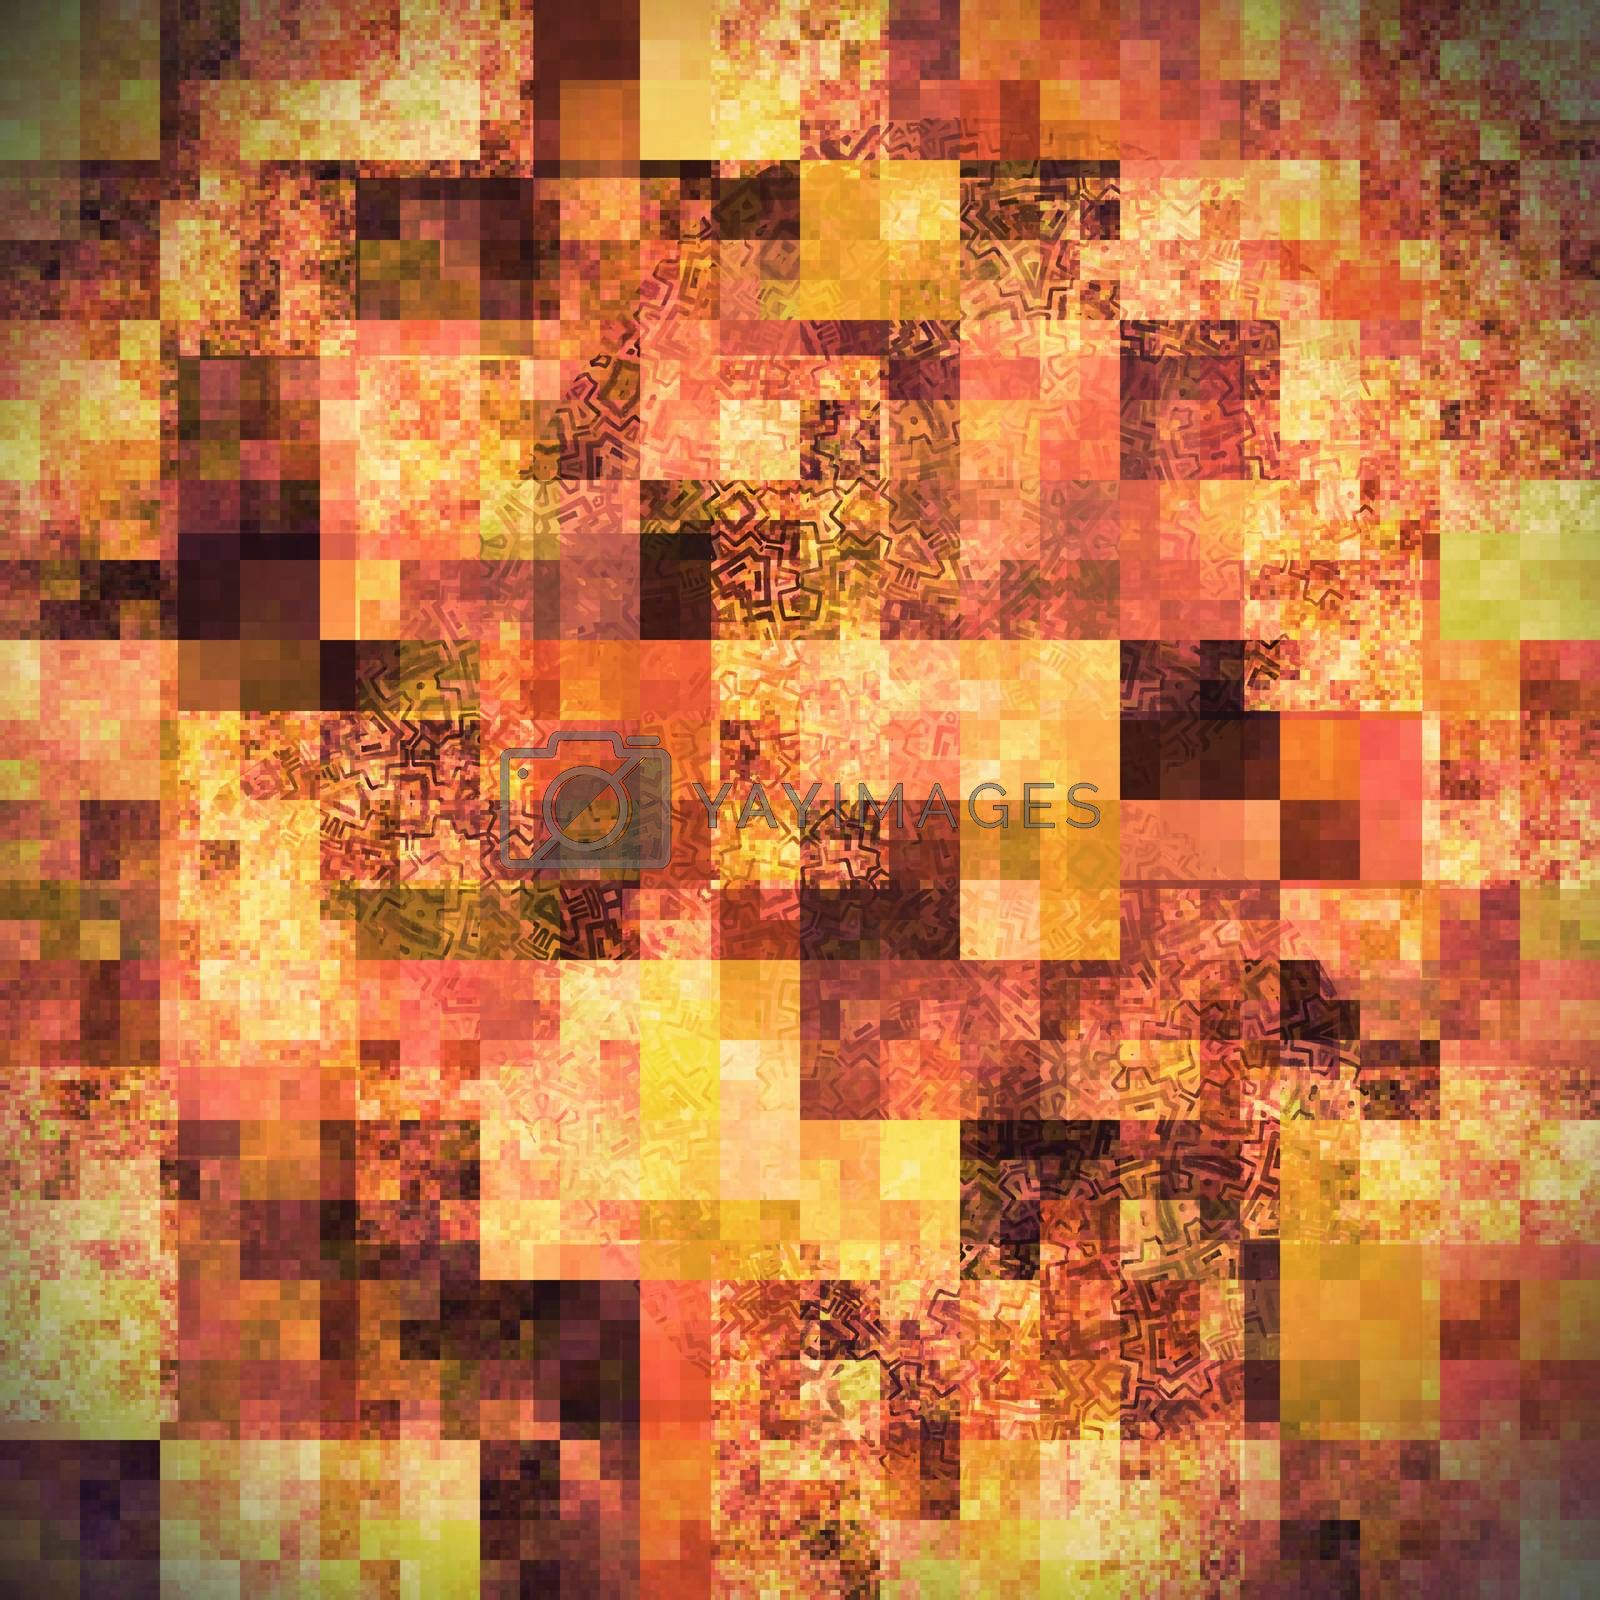 Abstract bright background with mosaic pattern